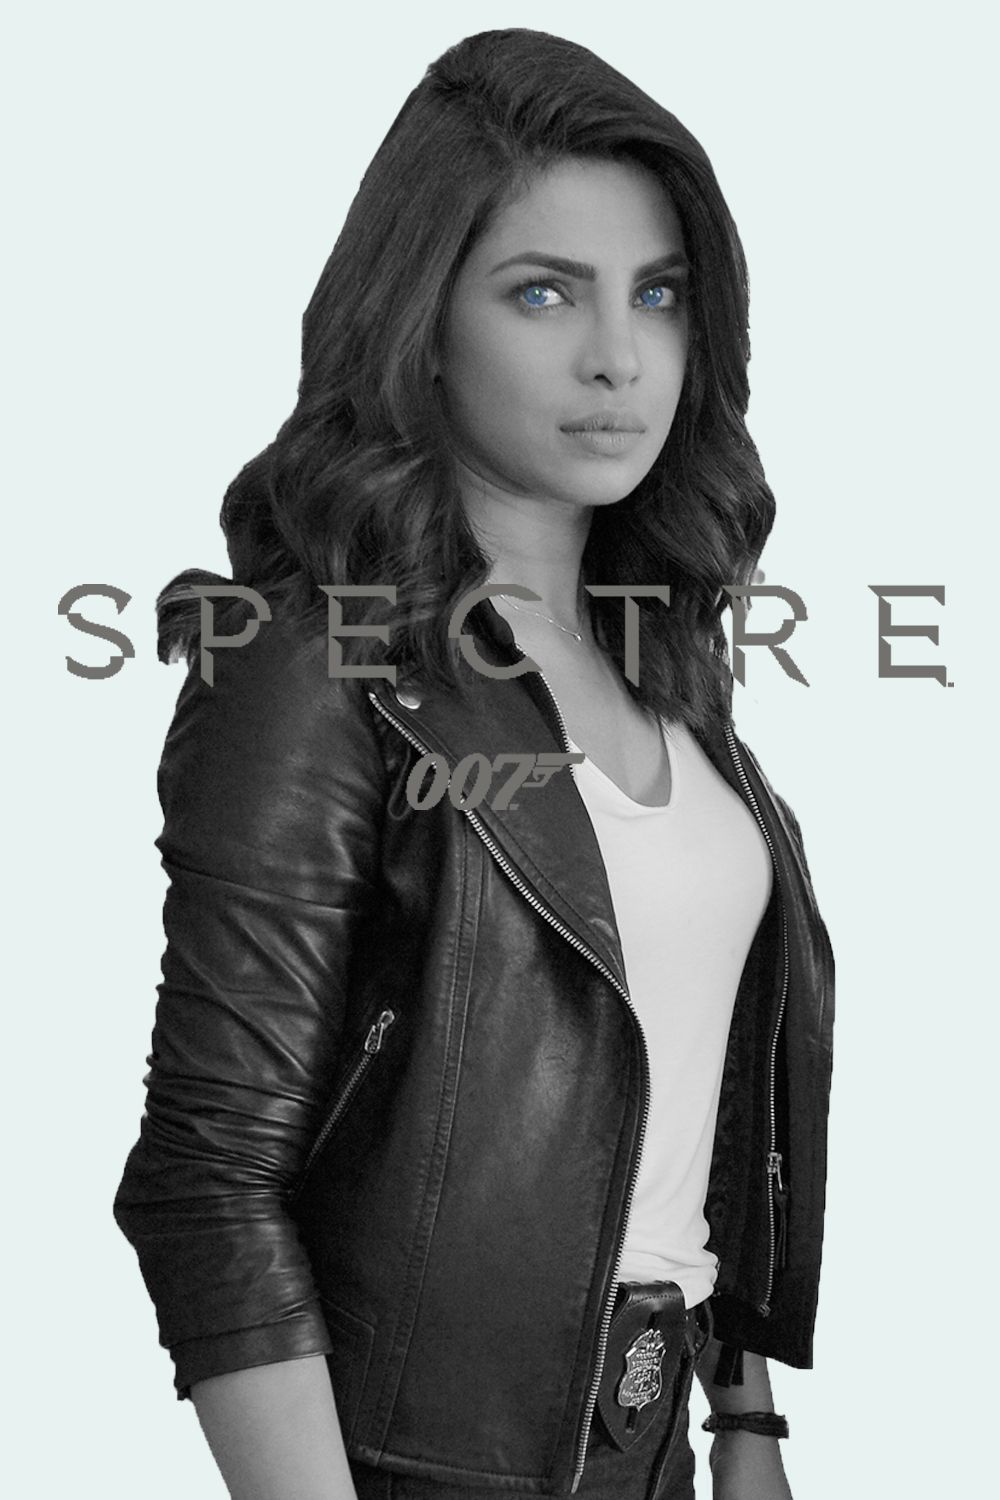 "<p>James Bond has been on the big screen since 1963, but the character has yet to be played by anyone but a white British man. Yawn. We nominate Priyanka Chopra as Jane (or James, because that <a href=""http://www.marieclaire.com/celebrity/a21030/blake-lively-july-2016-cover/"" target=""_blank"">*can* be a woman's name</a>). She's already proven her badass fighting and espionage skills as Alex on <em>Quantico, </em>and when <em>Complex</em> <a href=""http://www.complex.com/pop-culture/priyanka-chopra-interview-2016-cover-story"">asked her</a> if she would ever want to be a Bond Girl, she said, ""I get that all the time... But f*ck that—I wanna be Bond."" Um, yes Priyanka, we will join in that campaign with you.  (#PriyankaForBond, get it trending.)</p>"